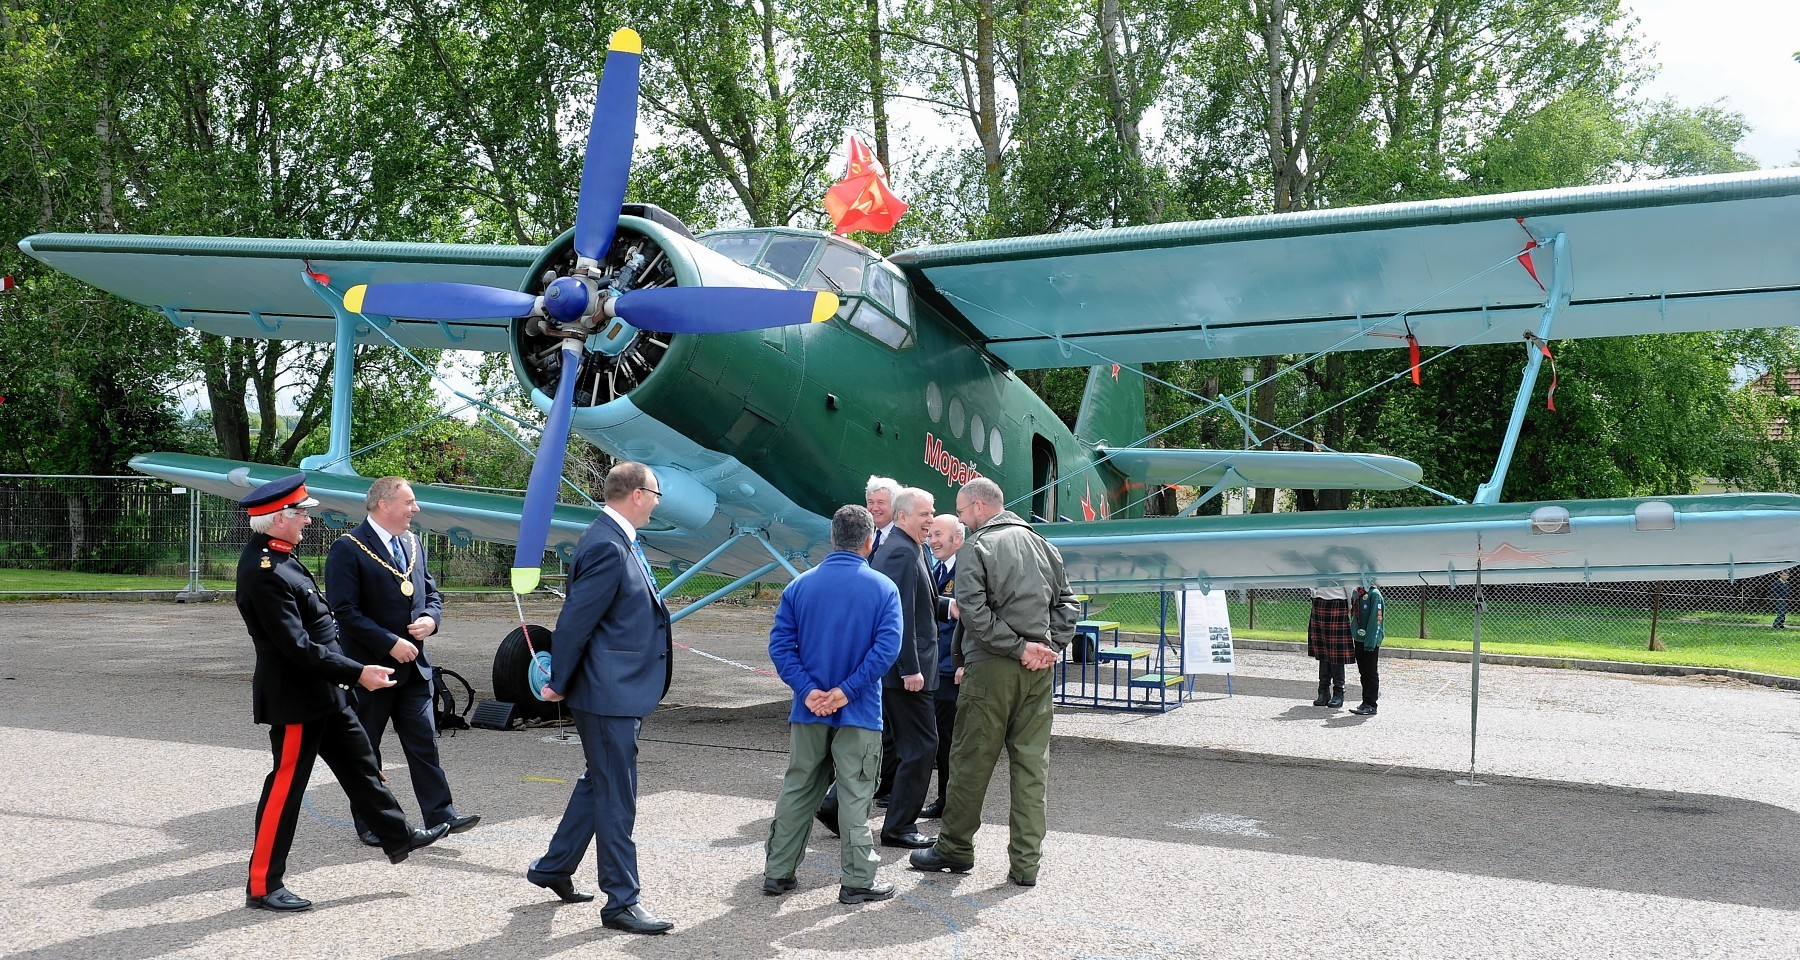 The Duke tours the display of aircraft in the outside display area